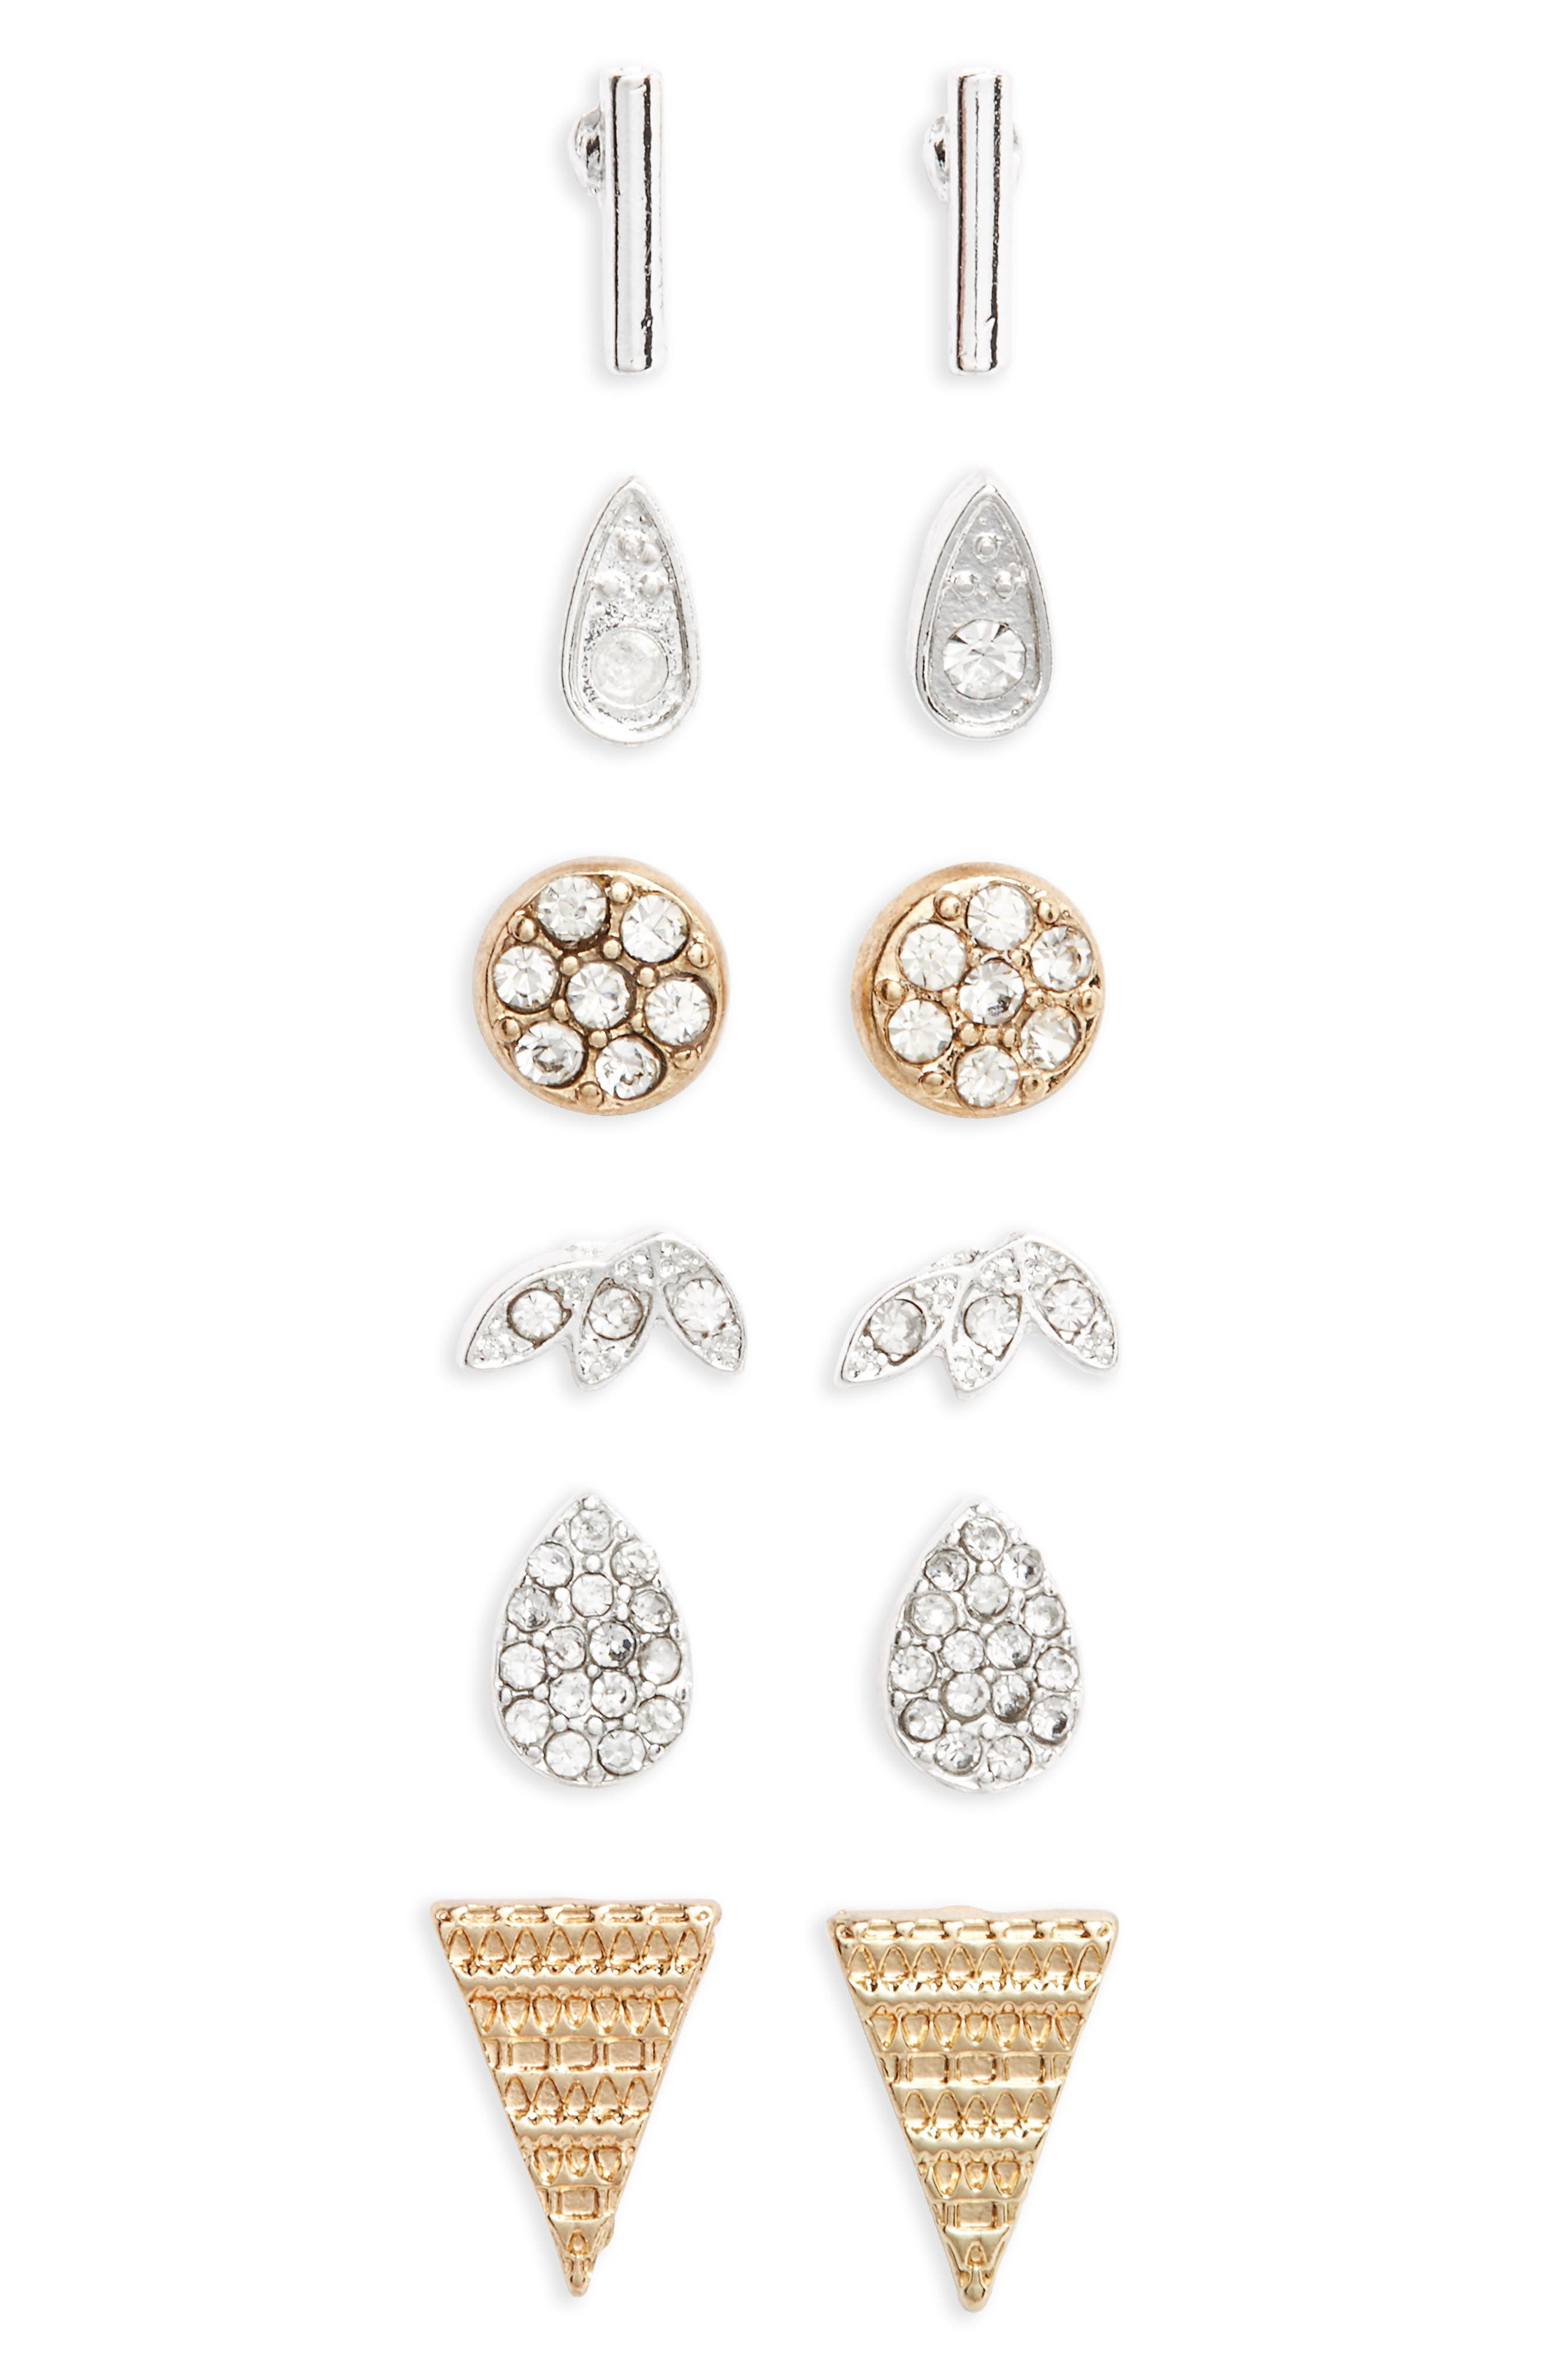 6-Pack Crystal Stud Earrings,                             Main thumbnail 1, color,                             Gold/ Silver